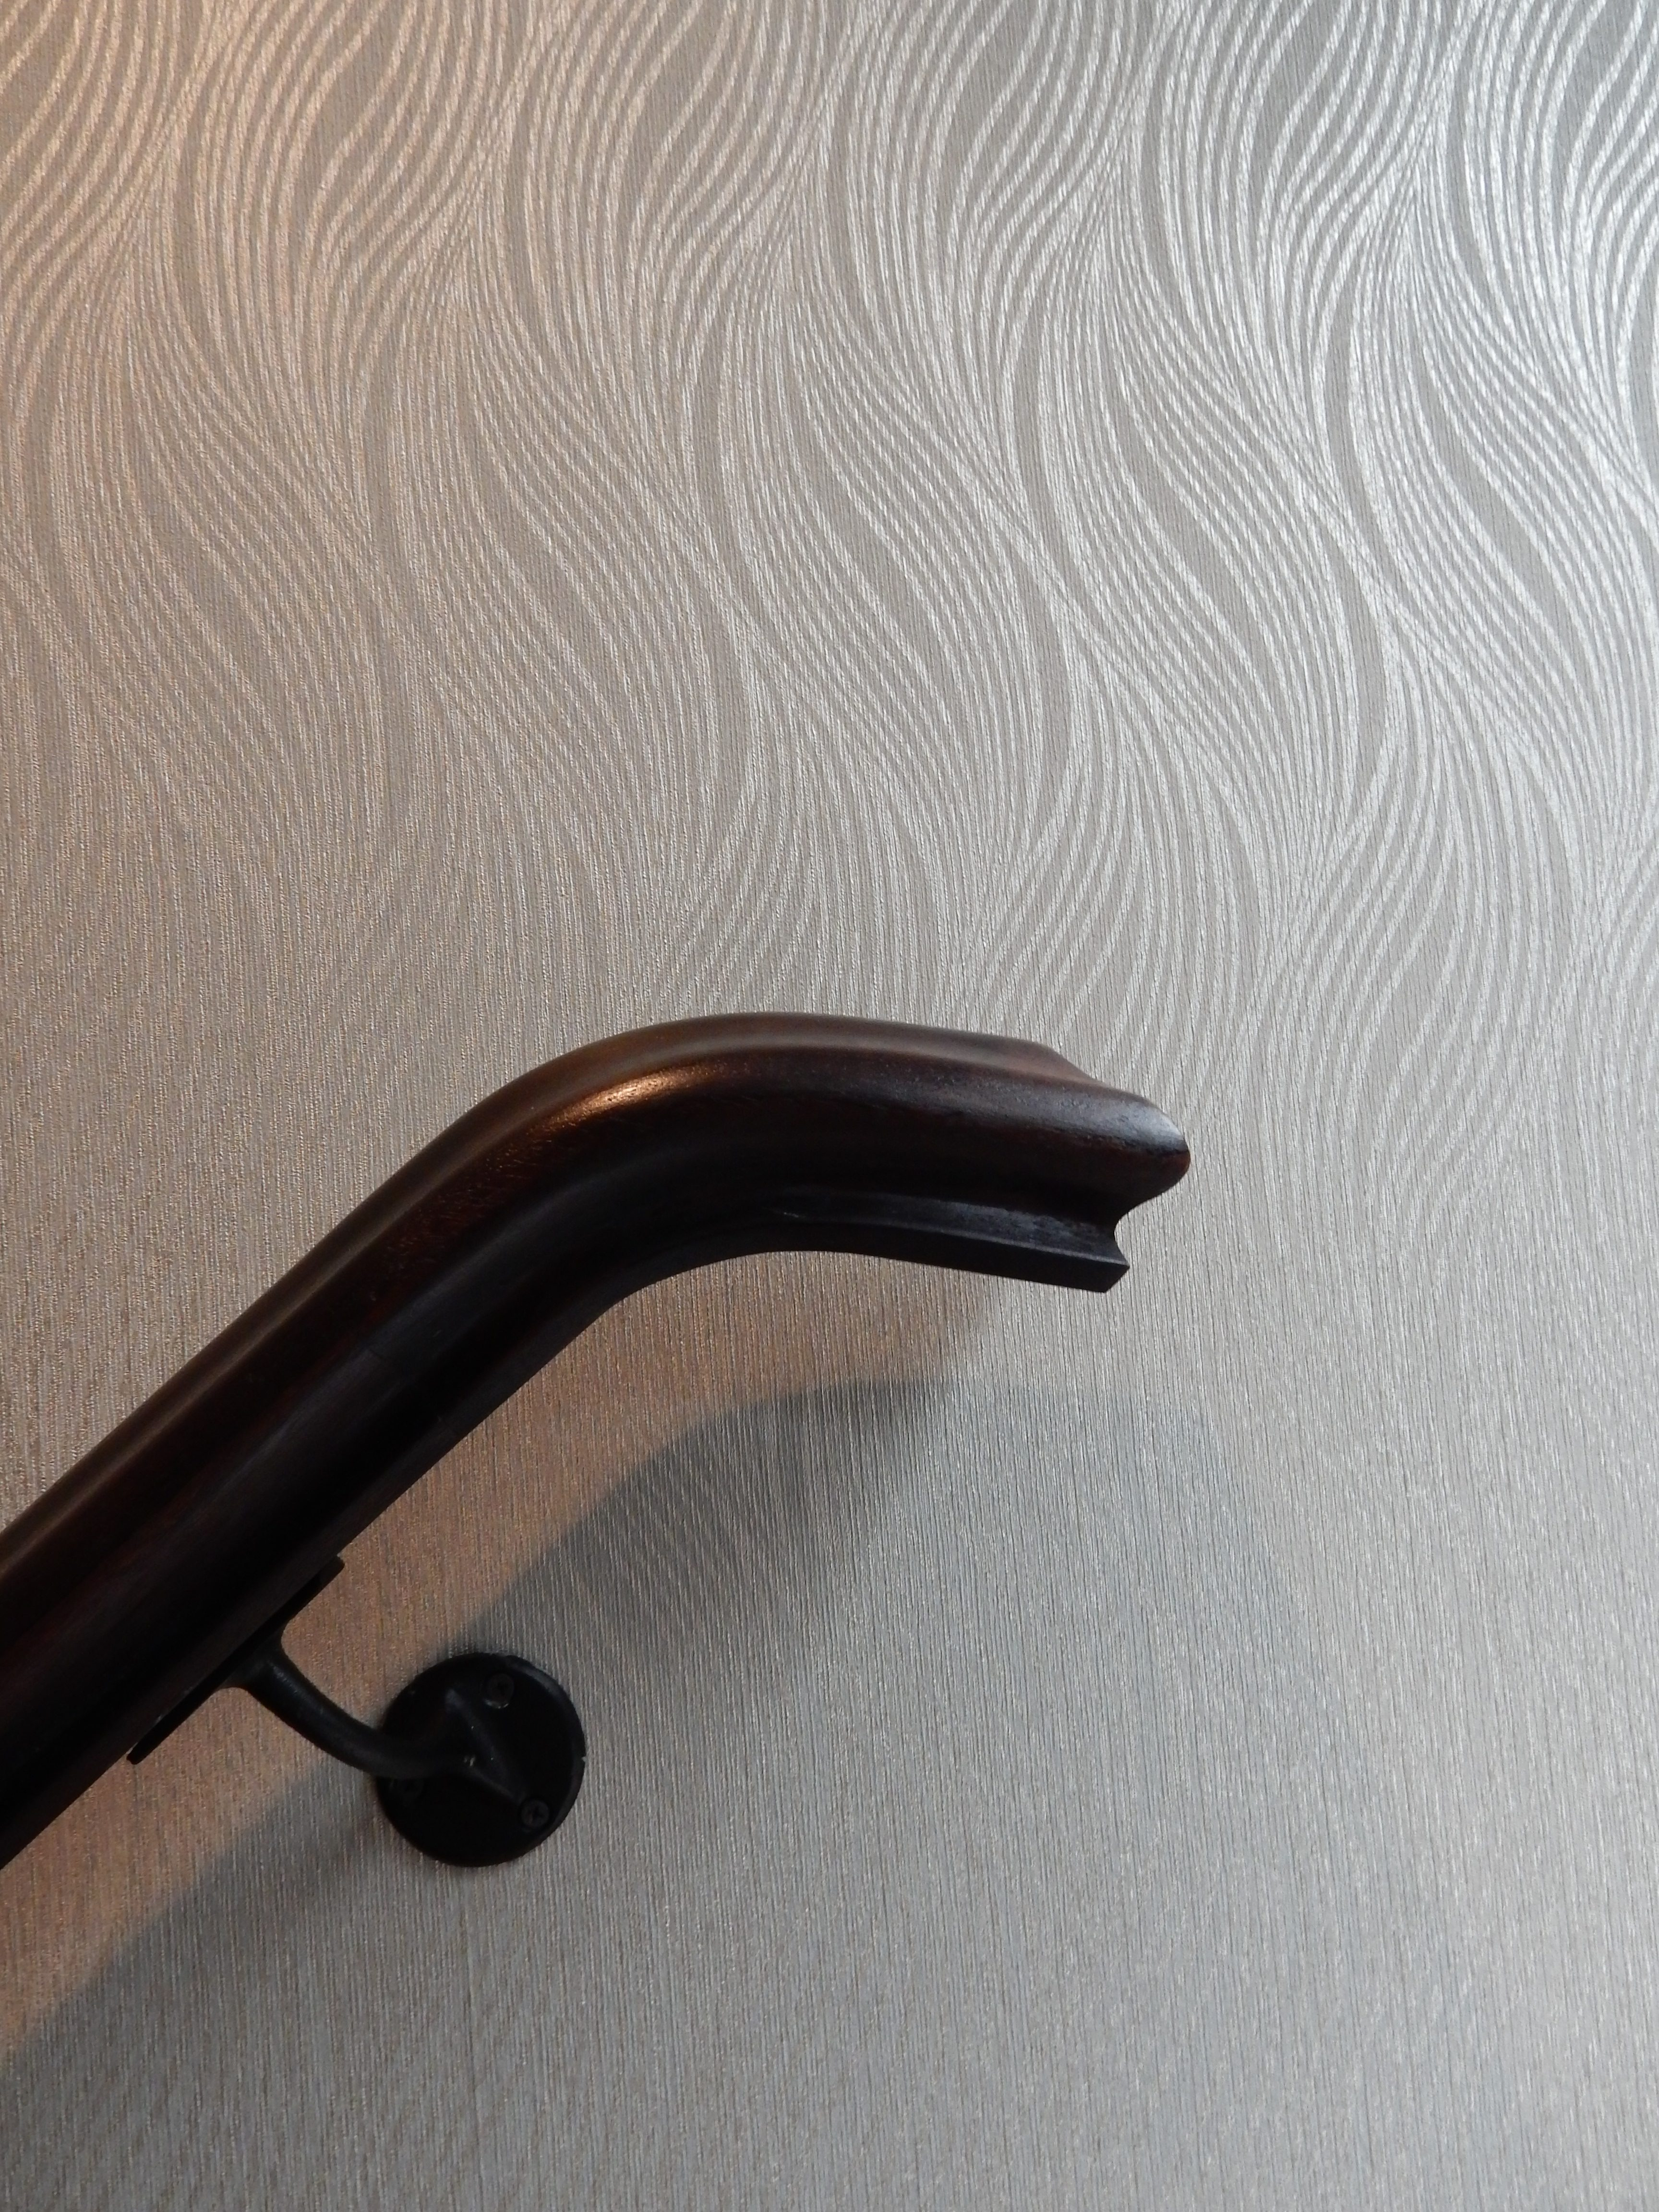 creativemass - handrail, wallpaper, texture, London